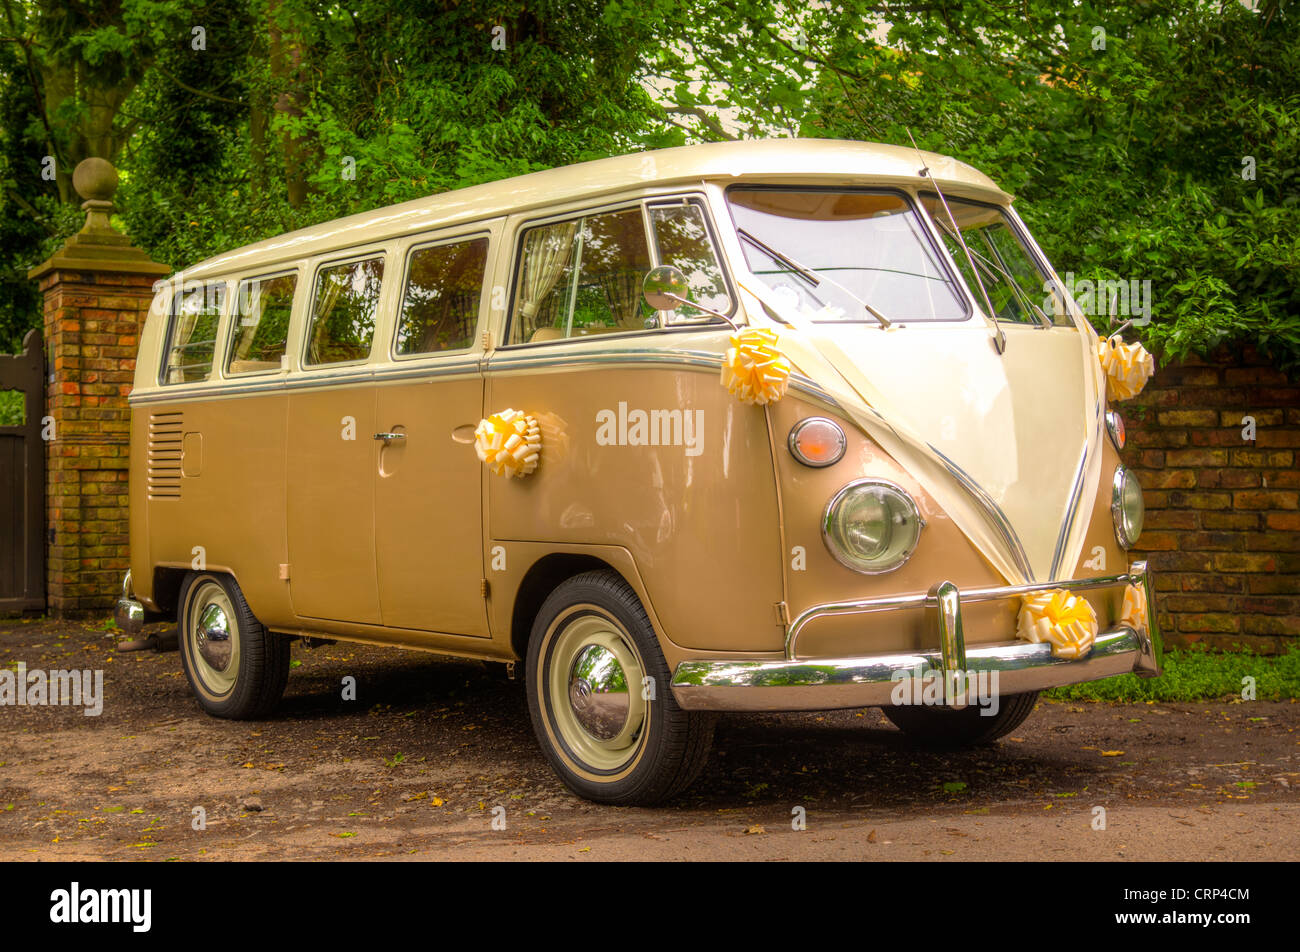 A VW Wedding camper van with flowers - Stock Image